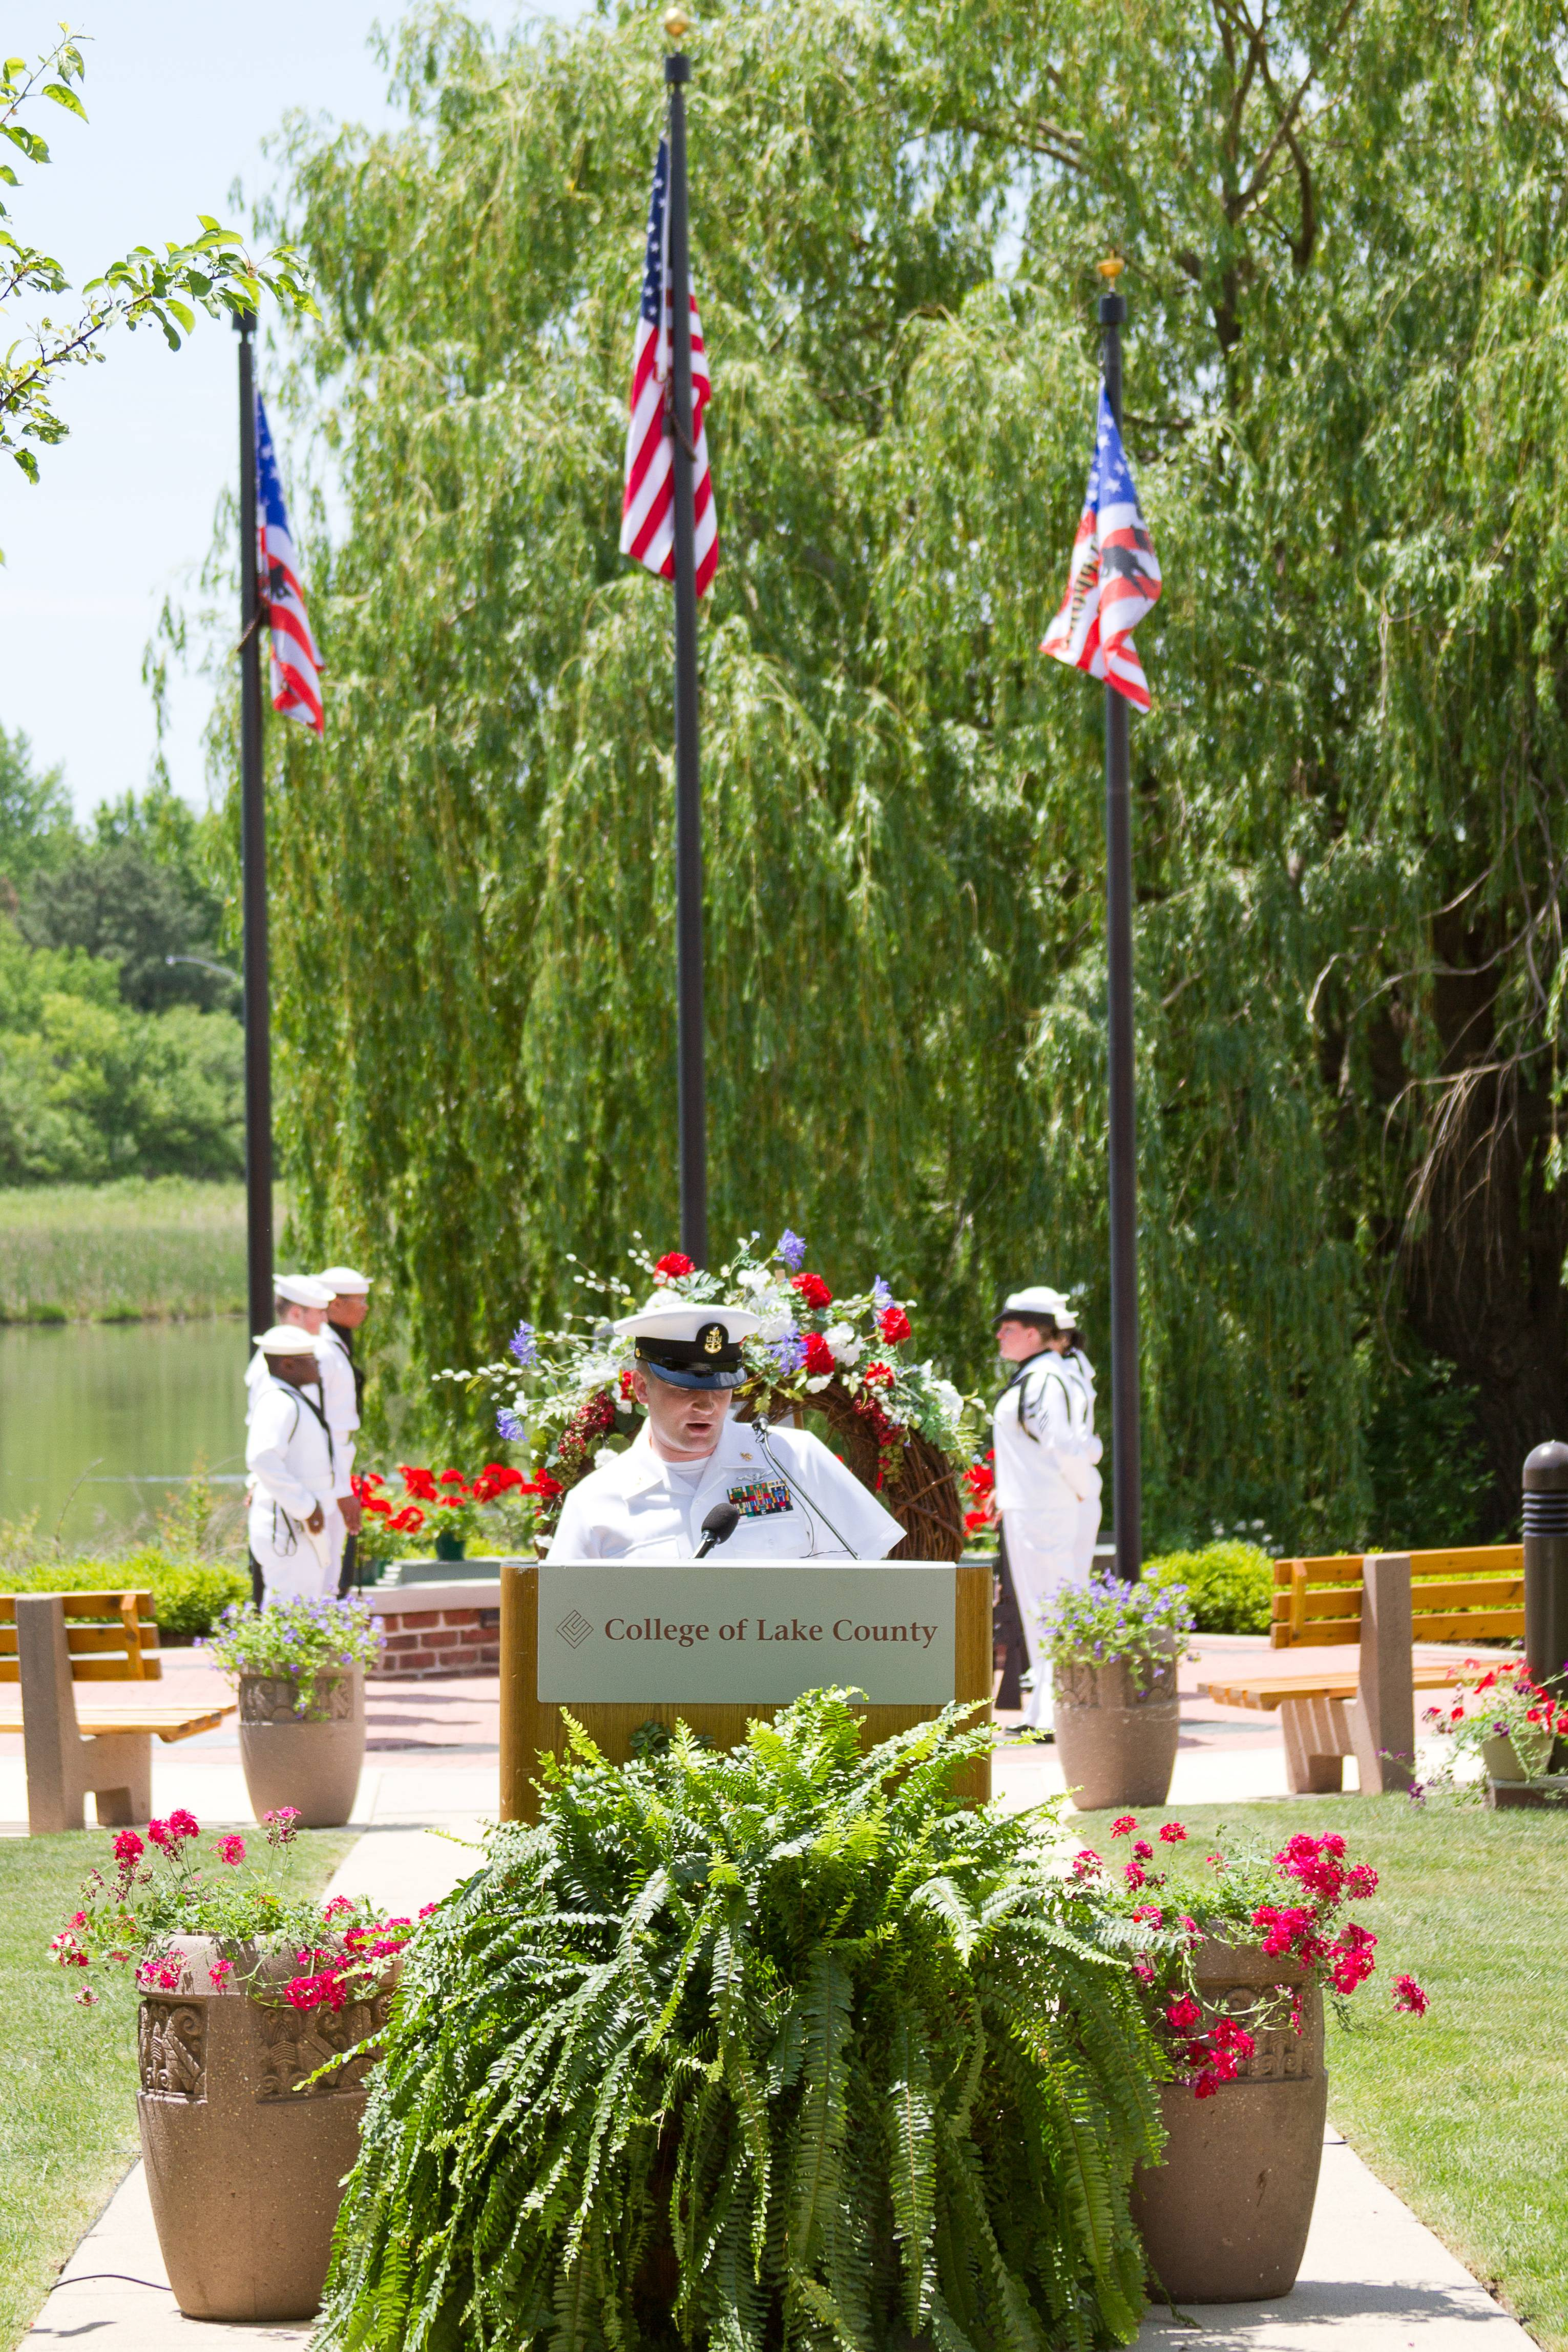 U.S. Navy personnel assist at a CLC Memorial Day ceremony. The seventh annual event will be held May 23 at noon.College of Lake County